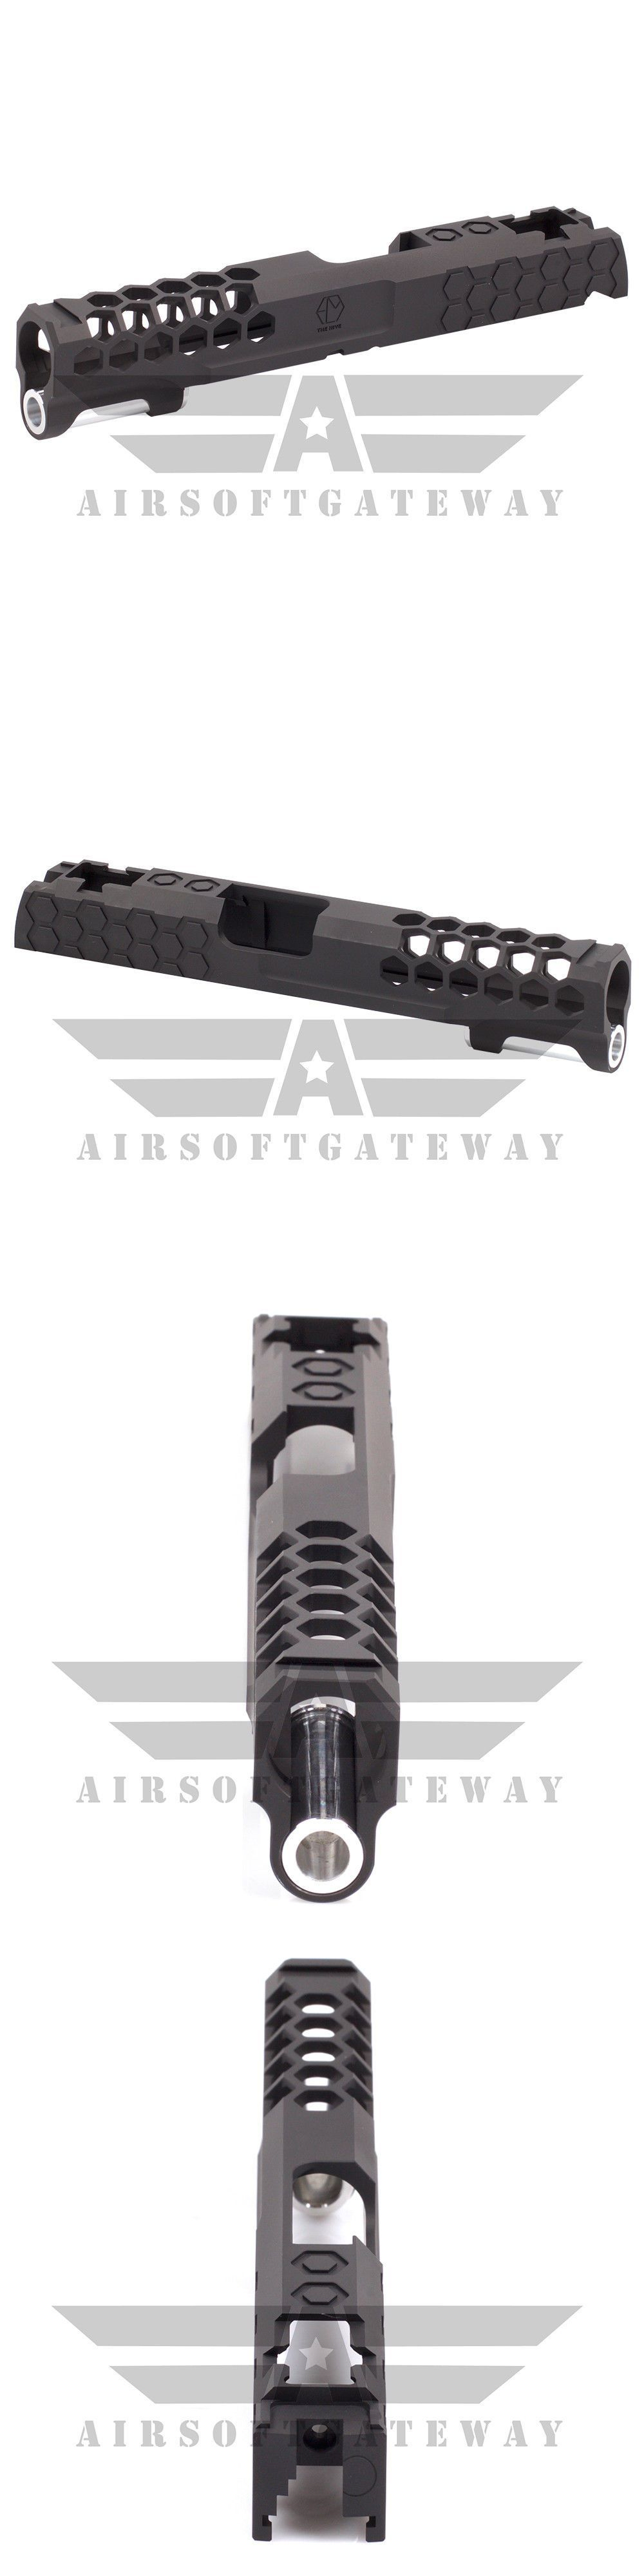 Accessories 31681: Airsoft Masterpiece Hive Hex Slide For Tokyo